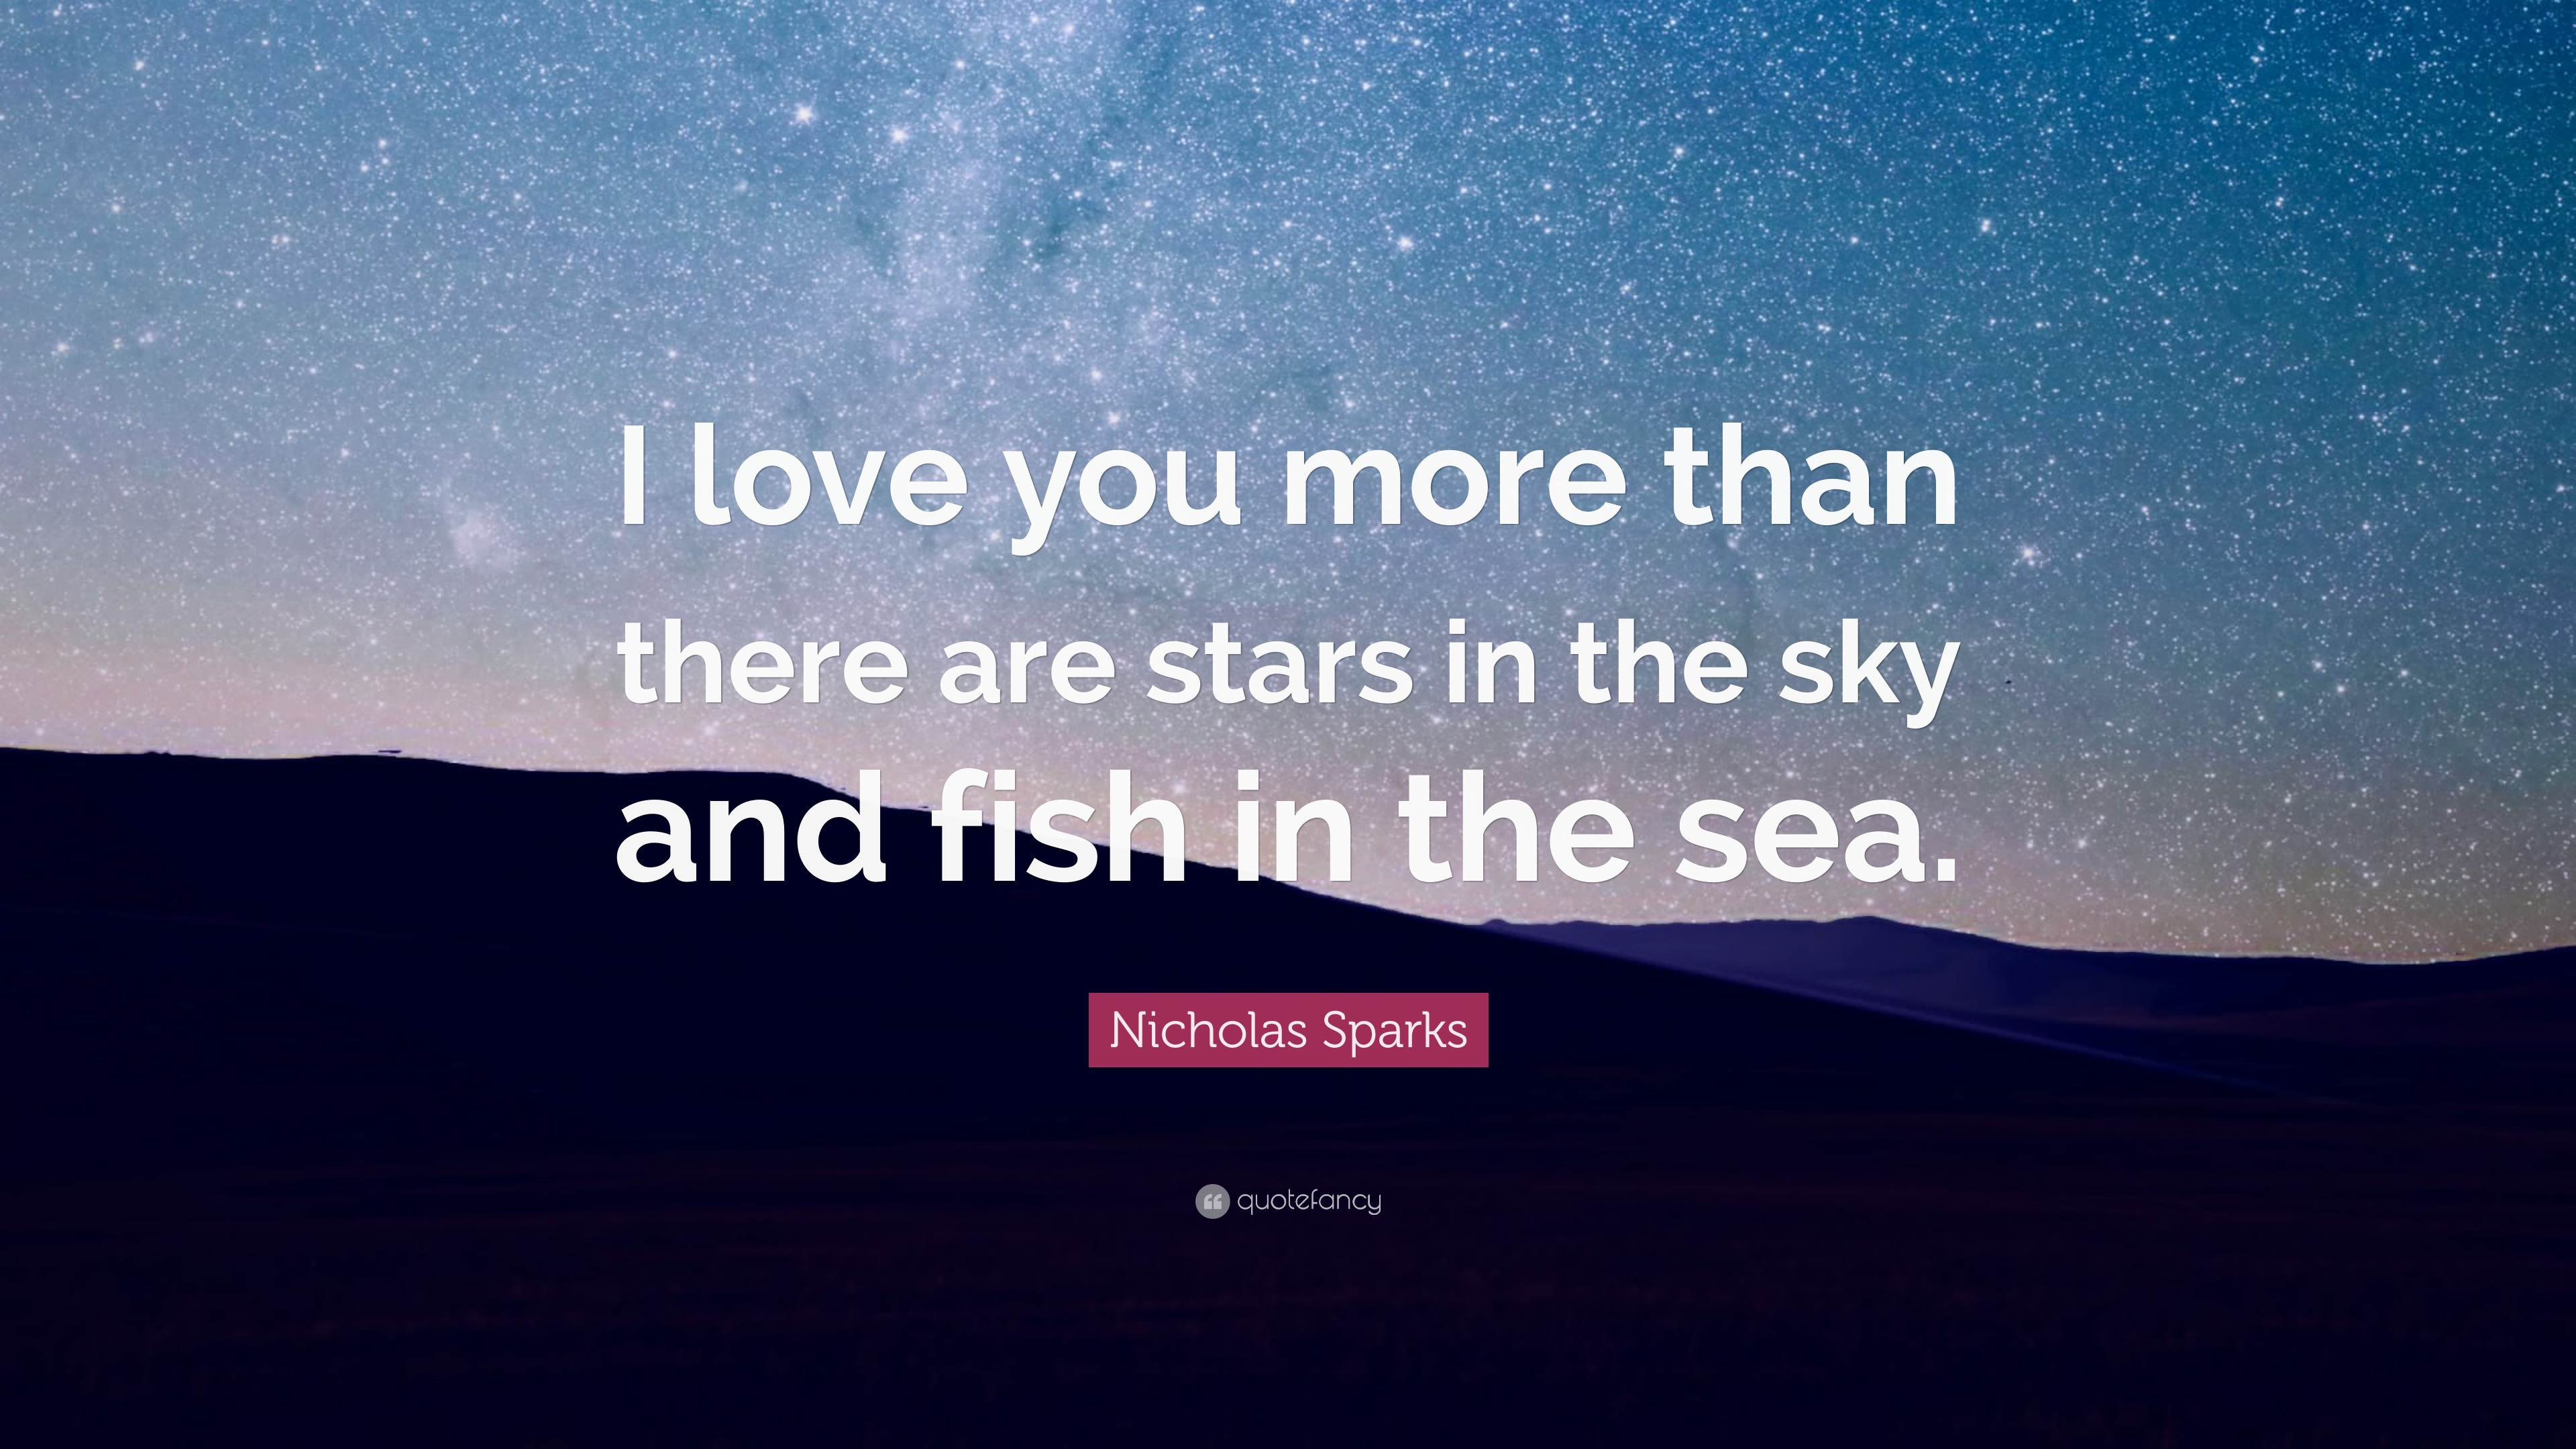 nicholas sparks quote i love you more than there are